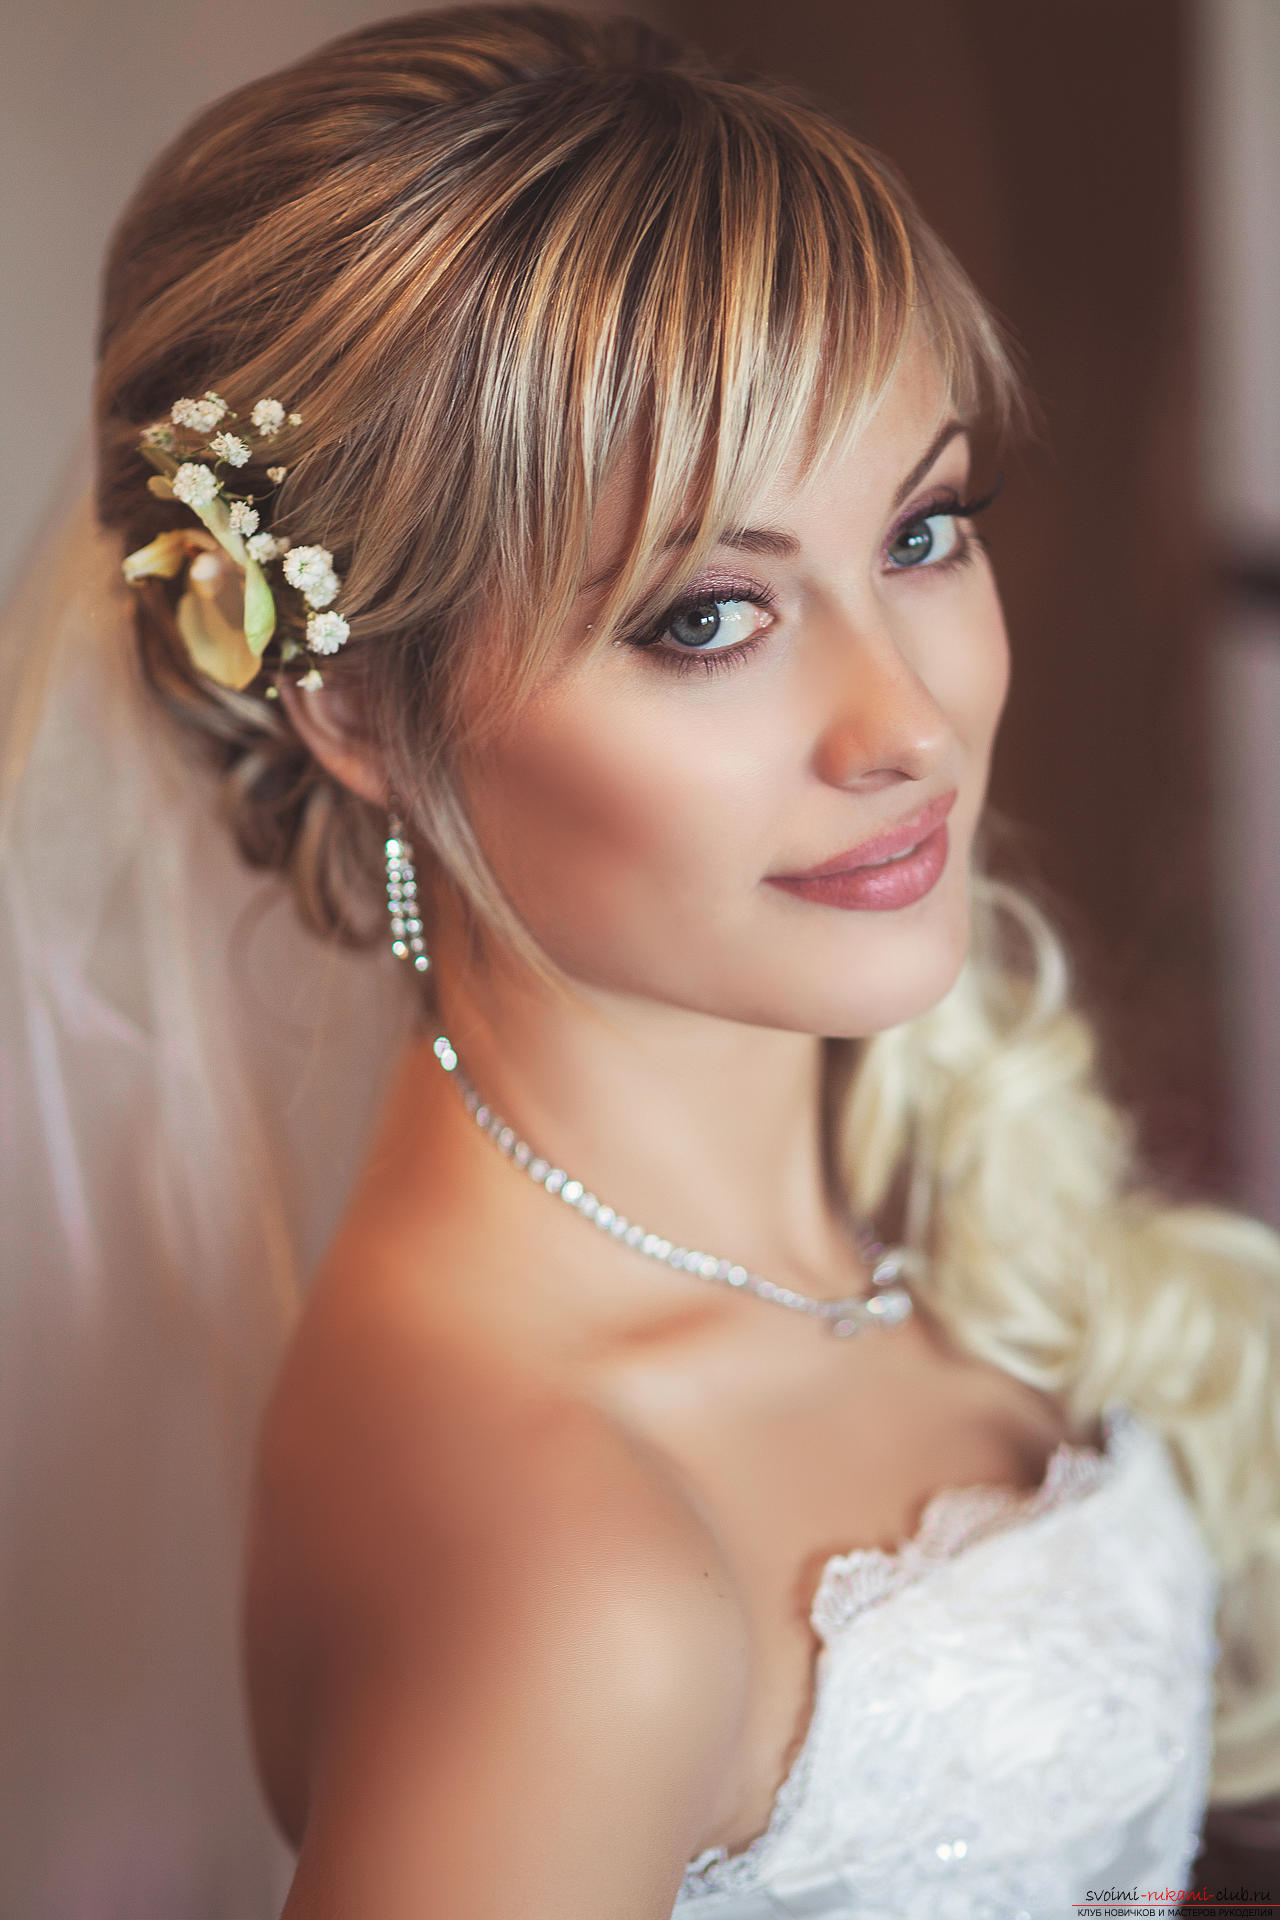 Hairstyles with bangs for the bride. Picture №3